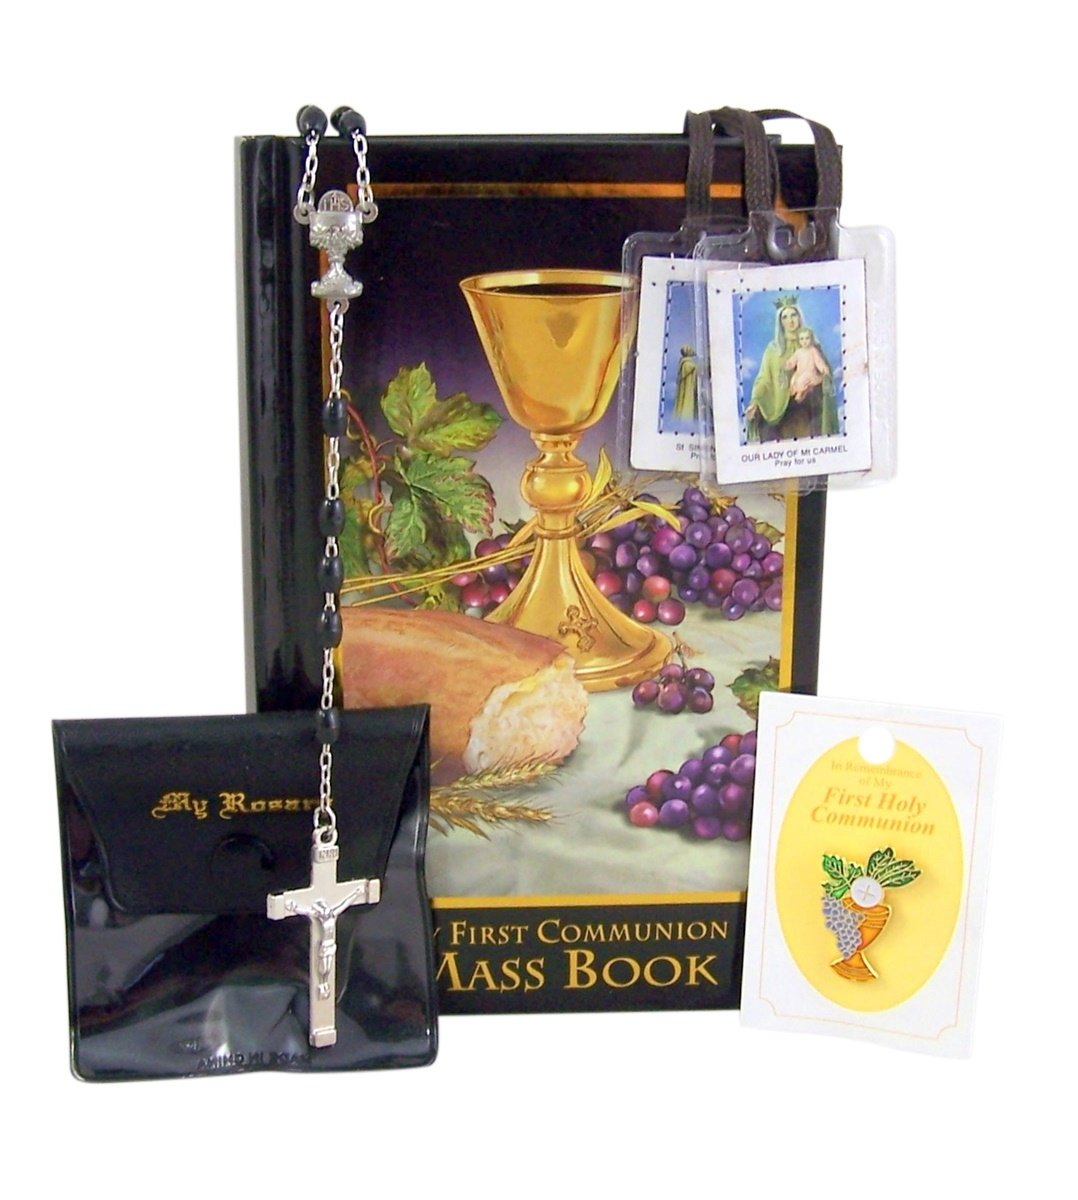 My First Communion Boxed Gift Set for Boys with Body of Christ Mass Book